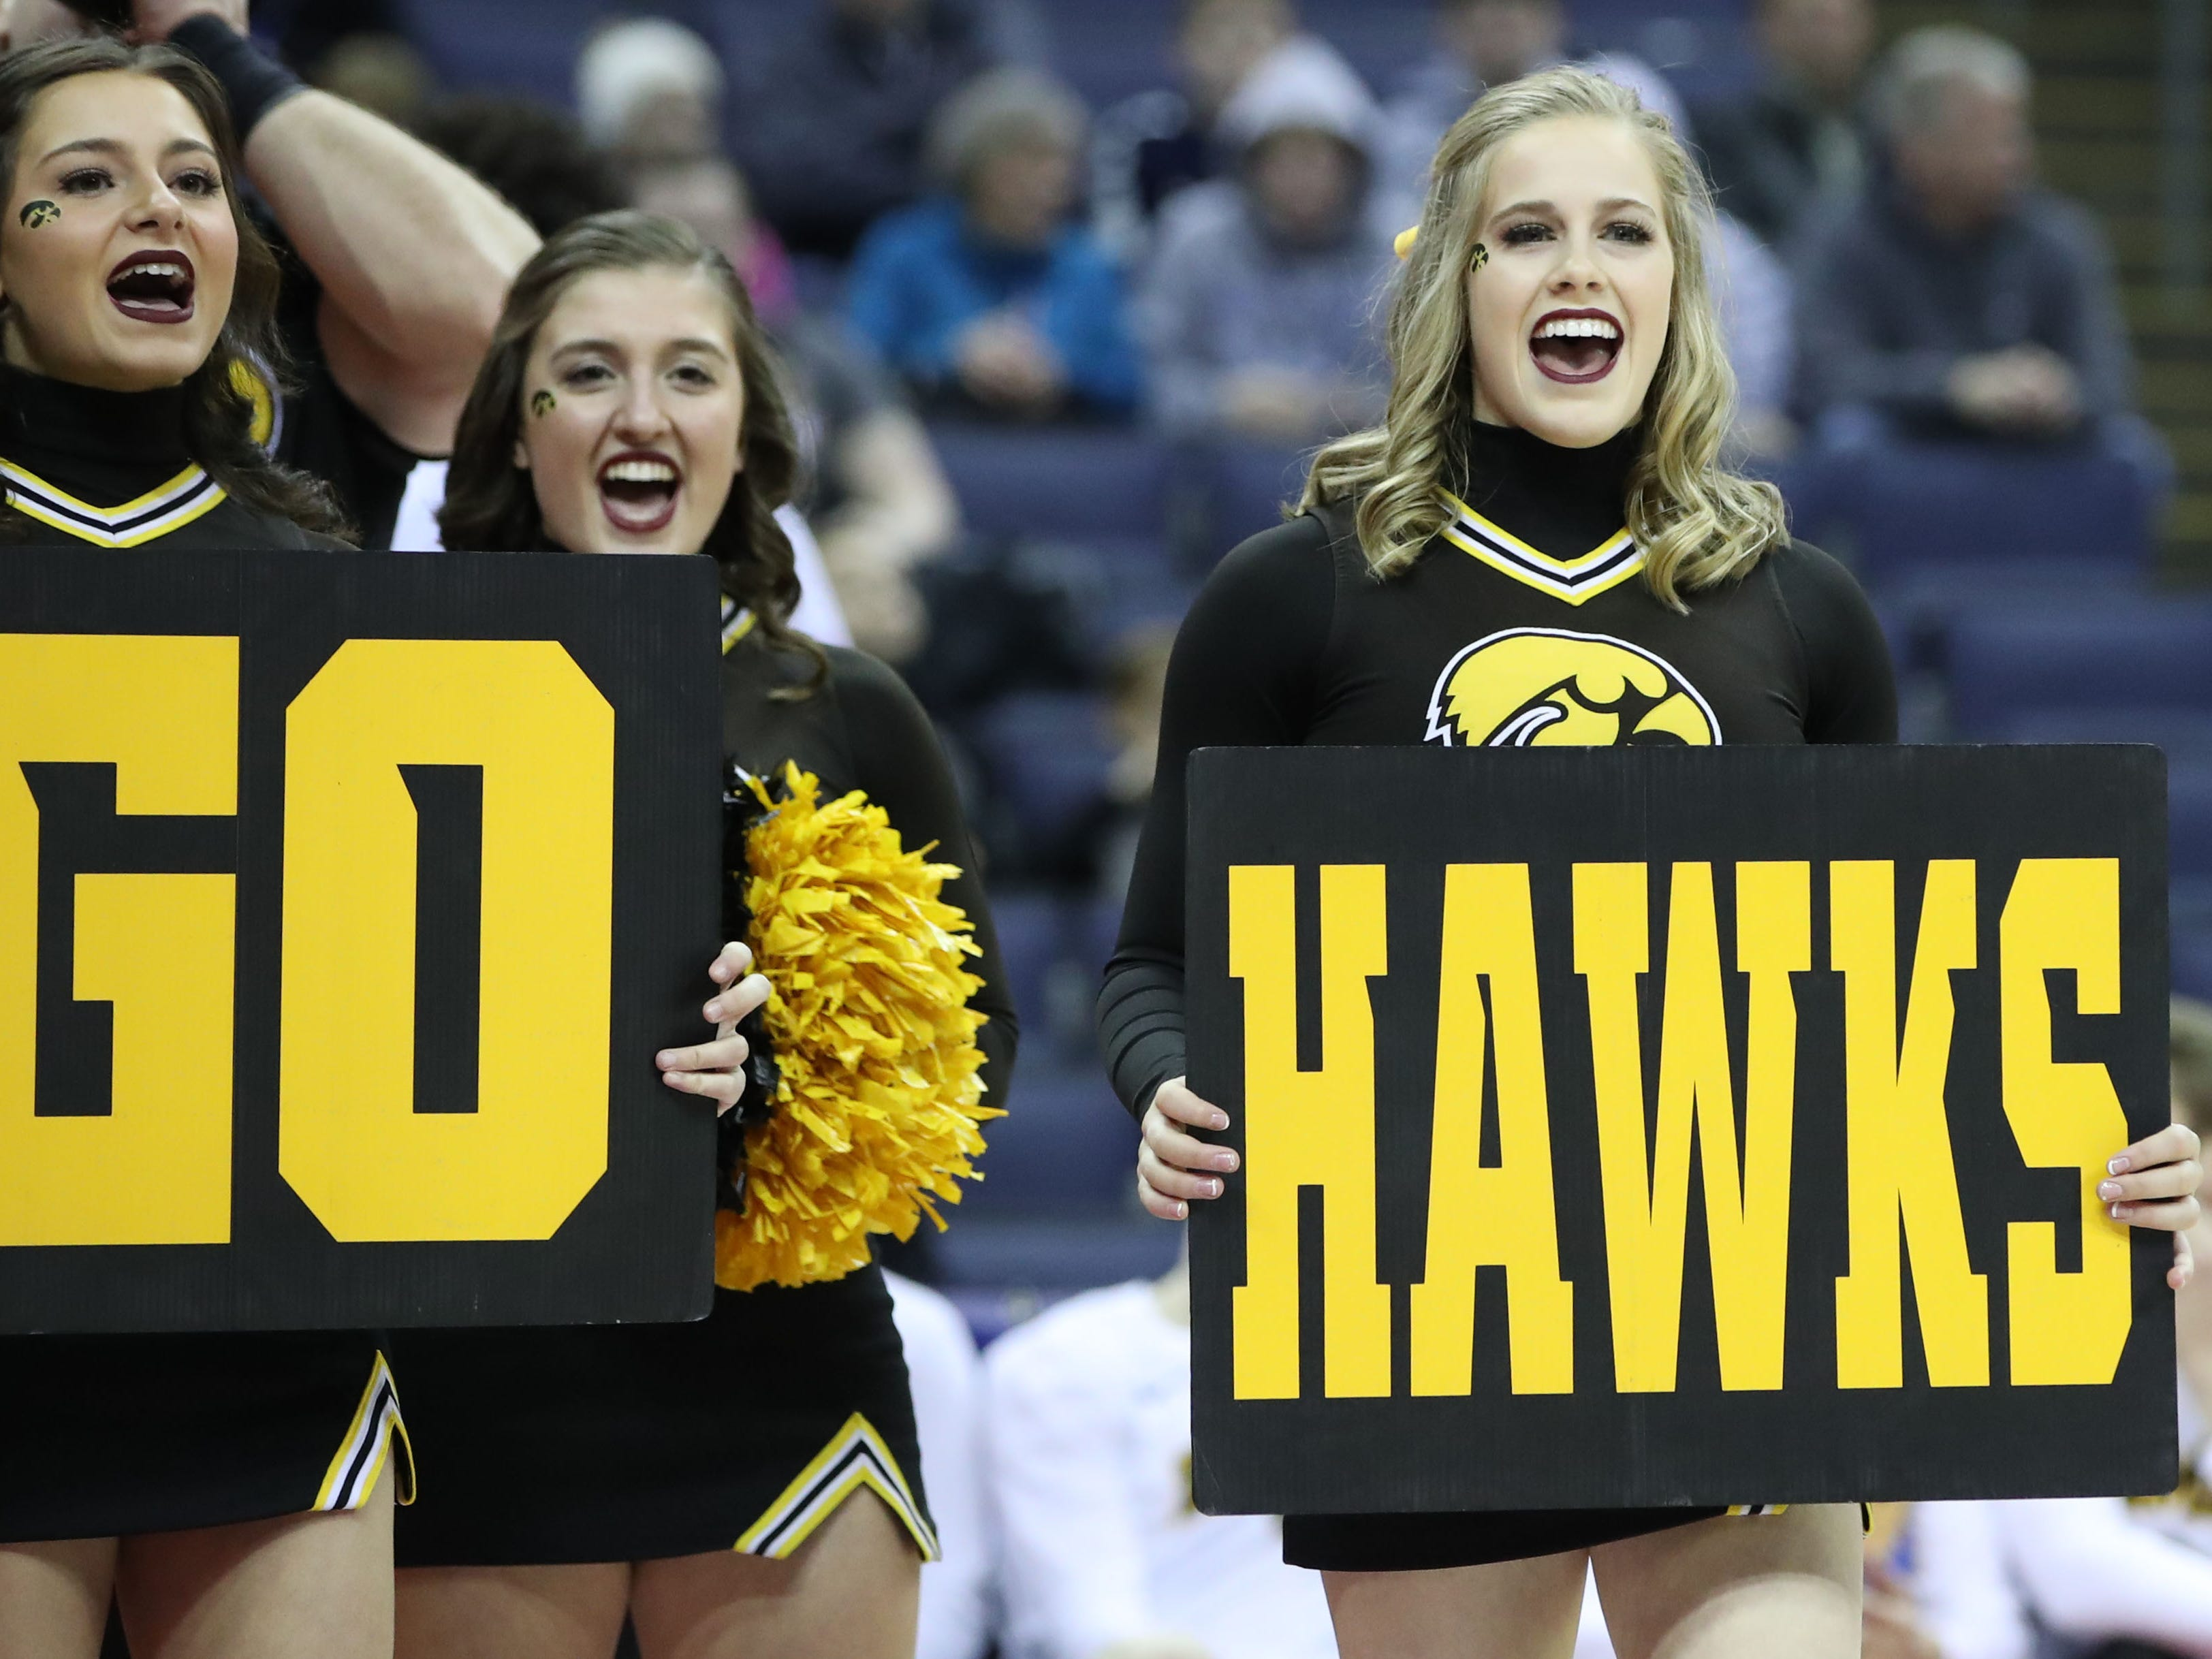 Iowa Hawkeyes cheerleaders before the game against the Cincinnati Bearcats in the first round of the 2019 NCAA Tournament at Nationwide Arena on March 22, 2019.